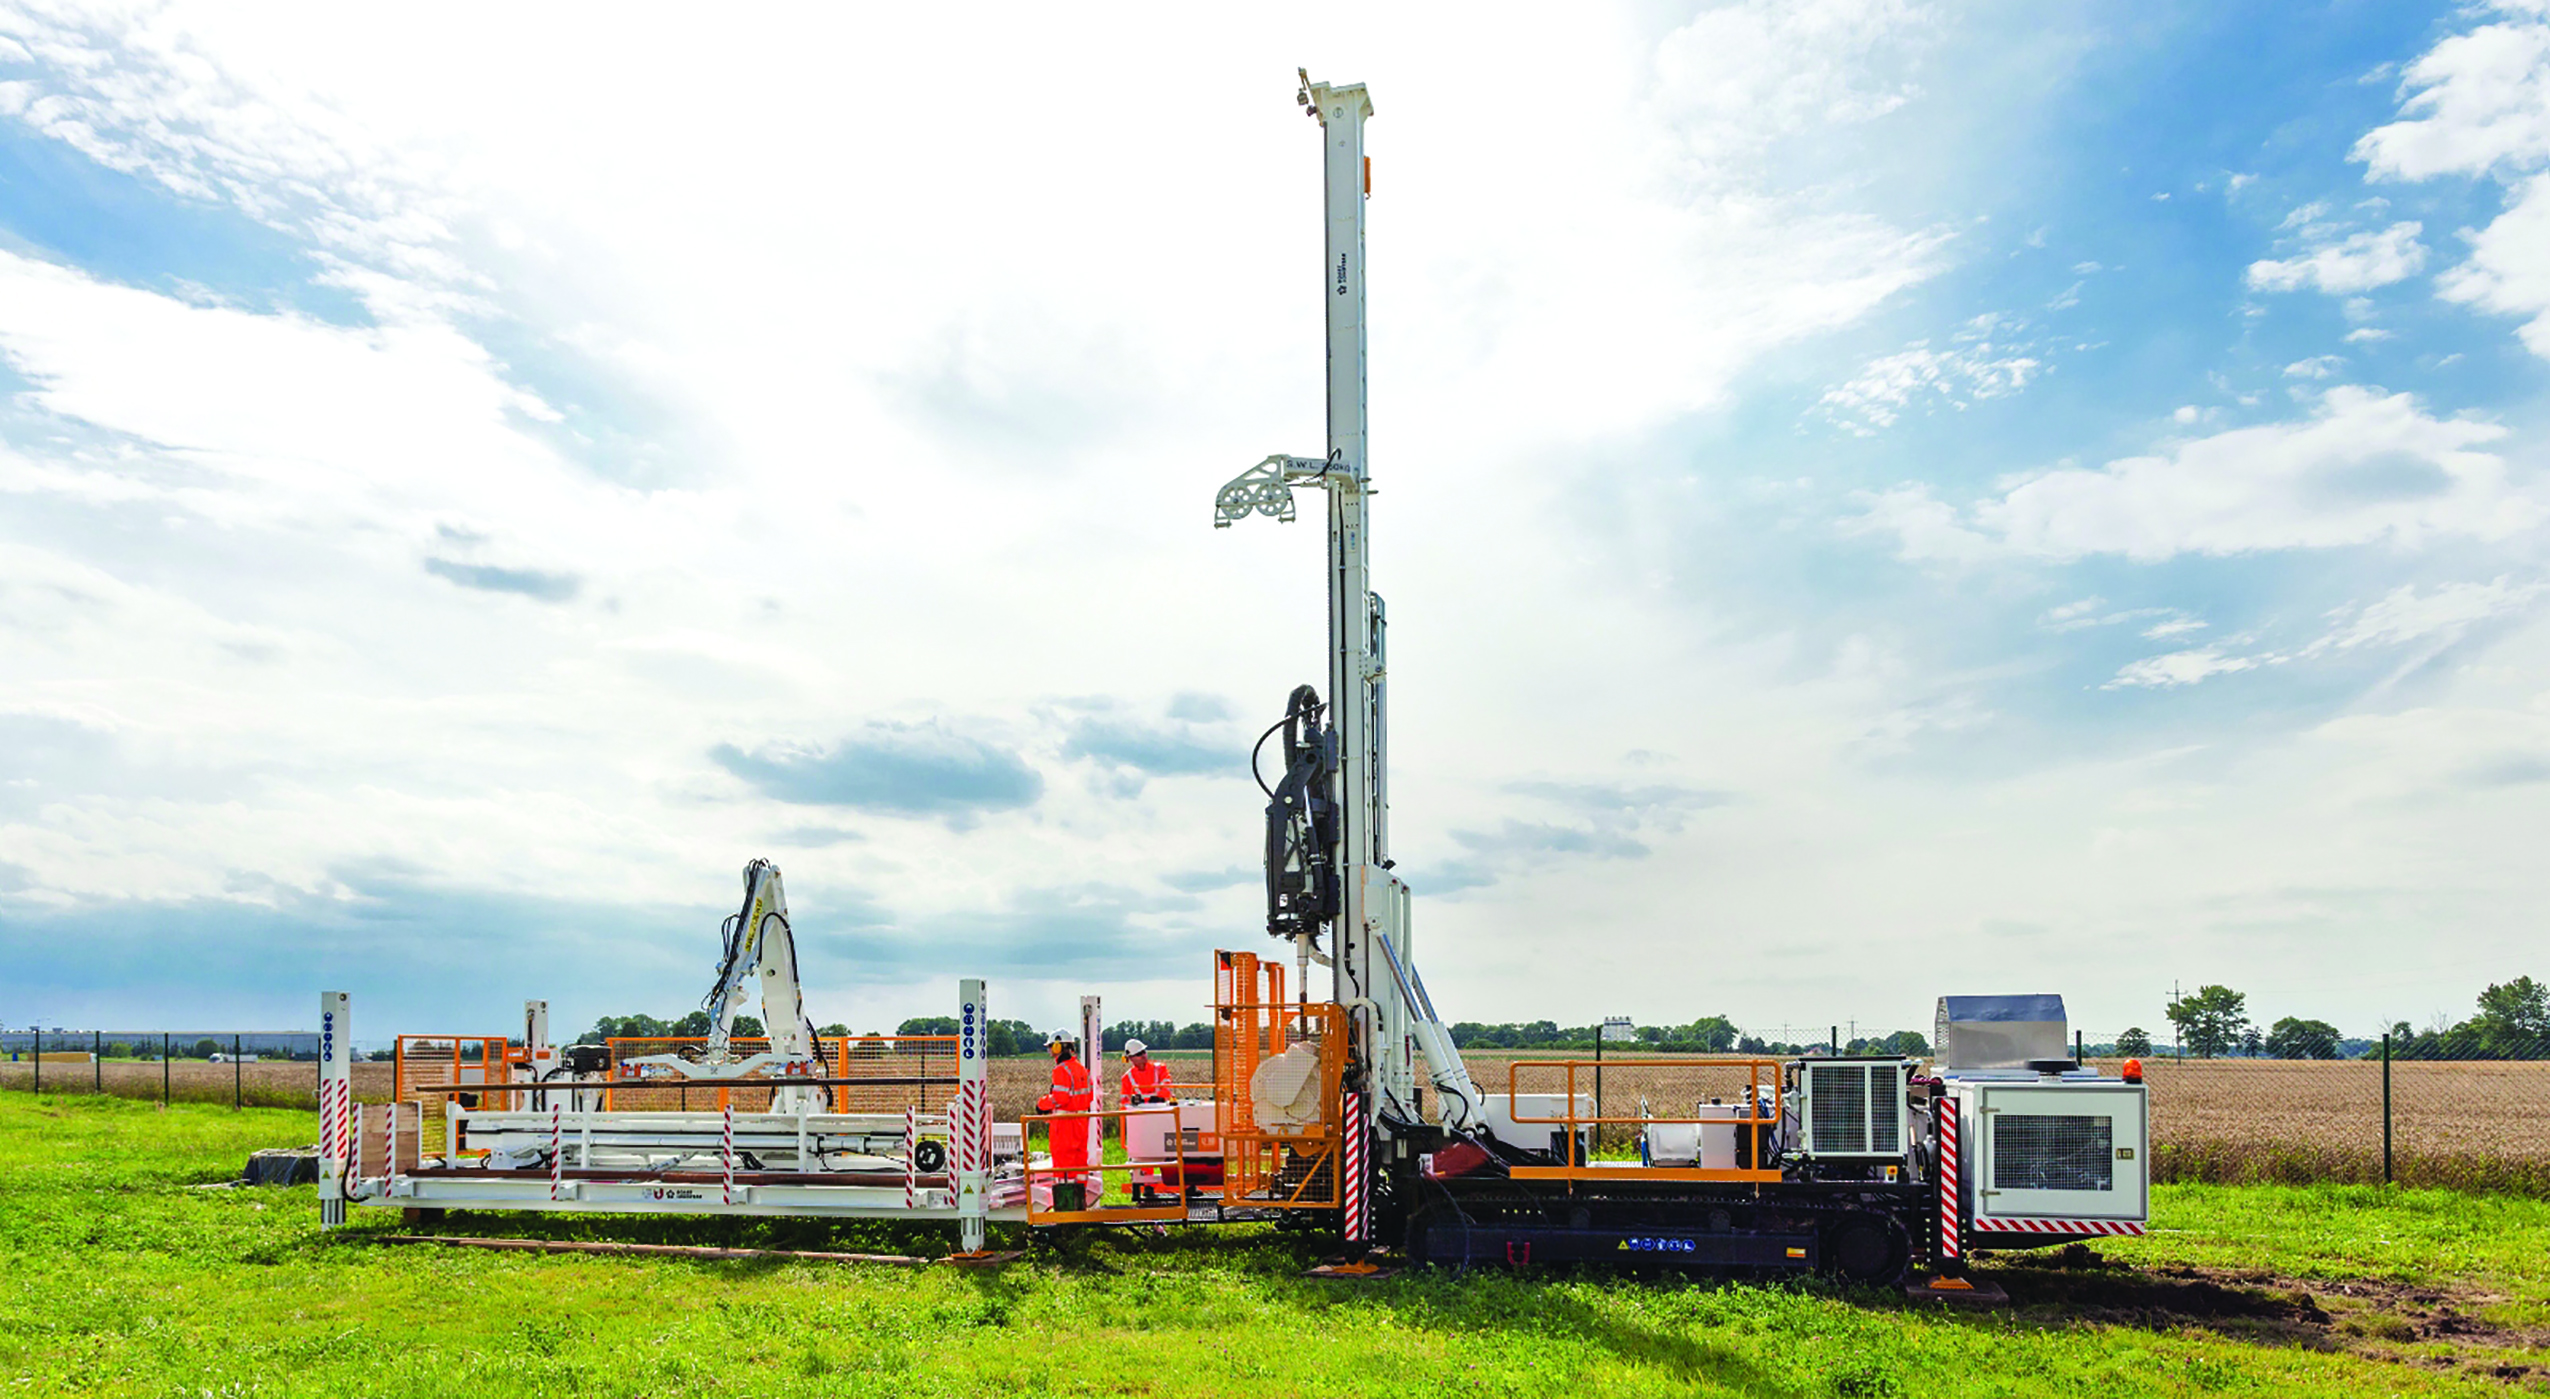 The LF160 drill rig and FREEDOMLoader from Boart Longyear features totally hands-free rod handling.